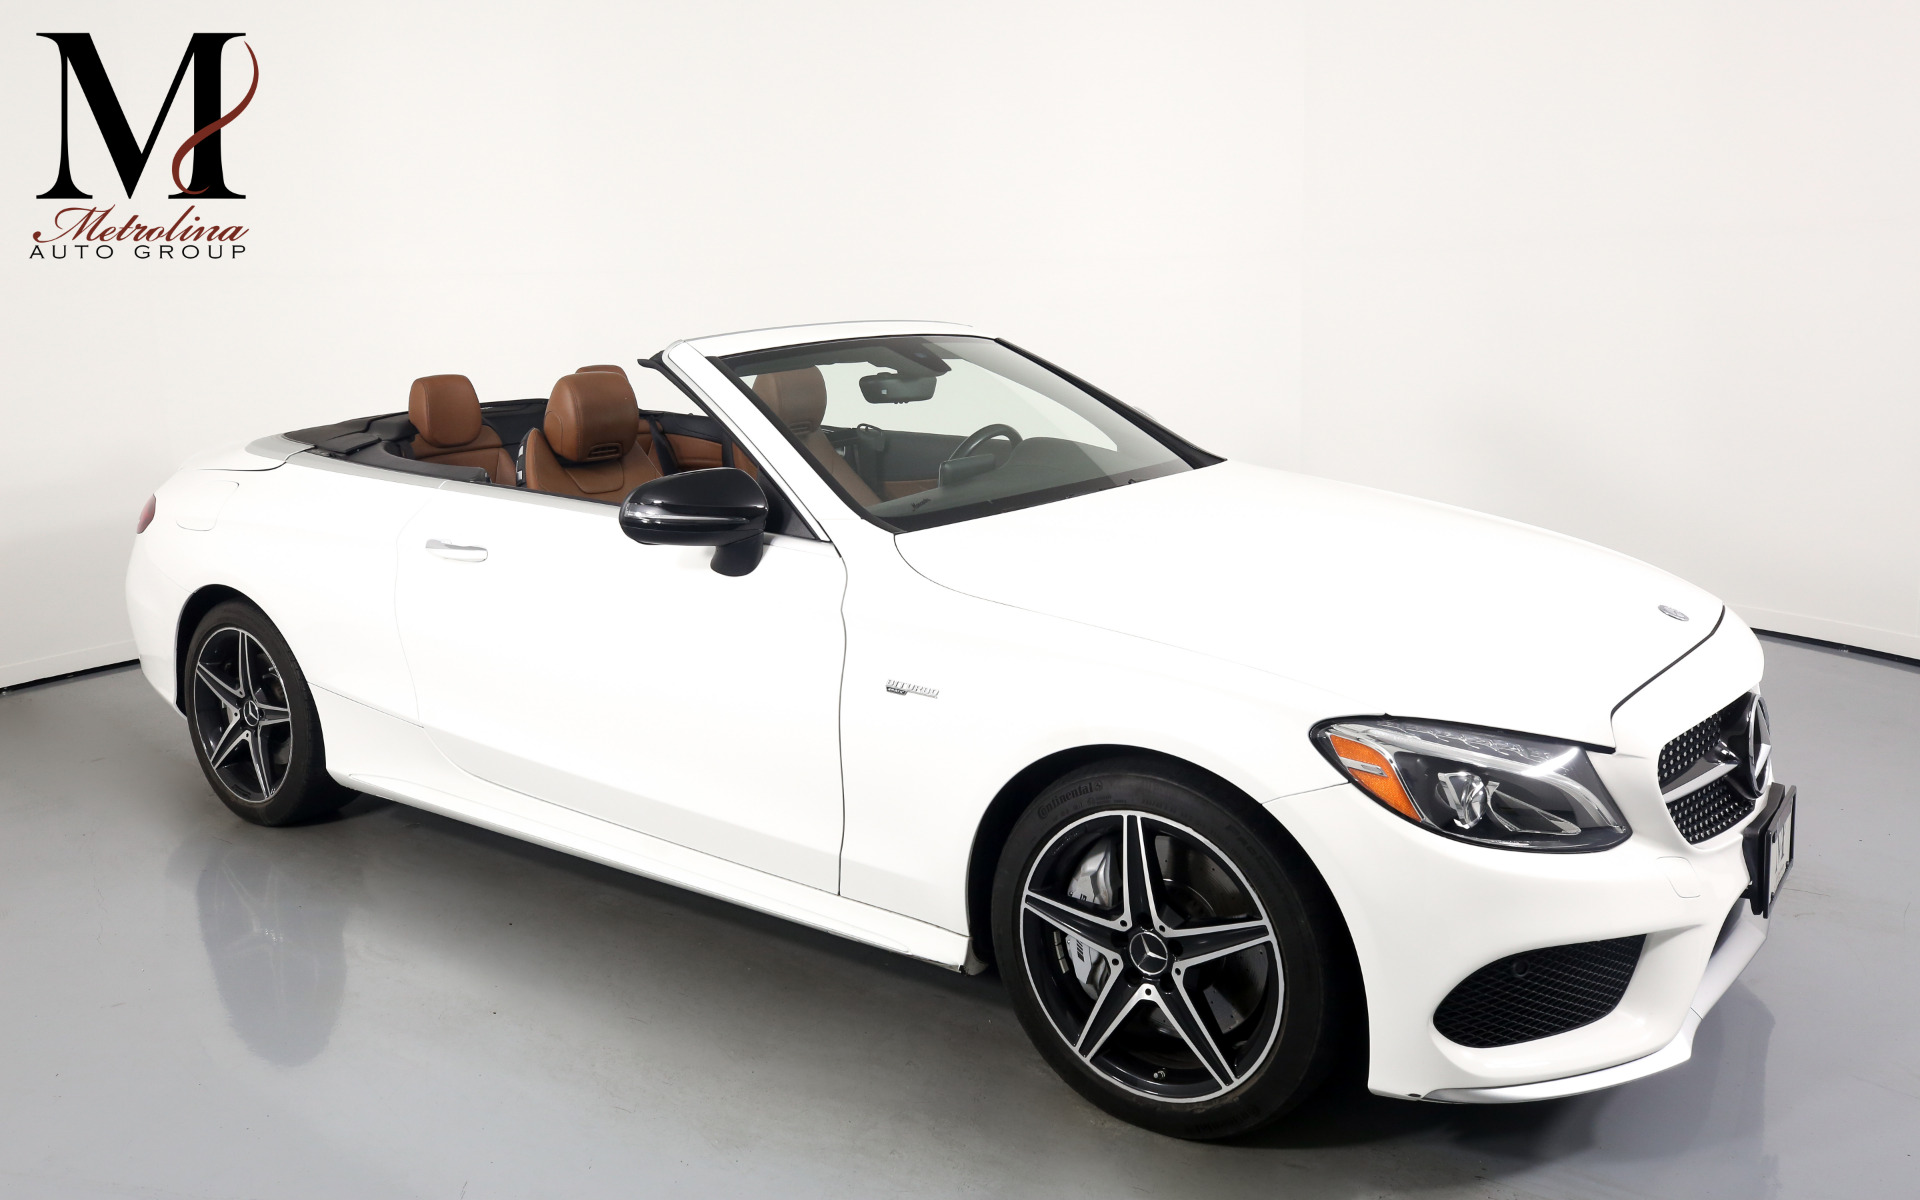 Used 2017 Mercedes-Benz C-Class AMG C 43 for sale $59,996 at Metrolina Auto Group in Charlotte NC 28217 - 1